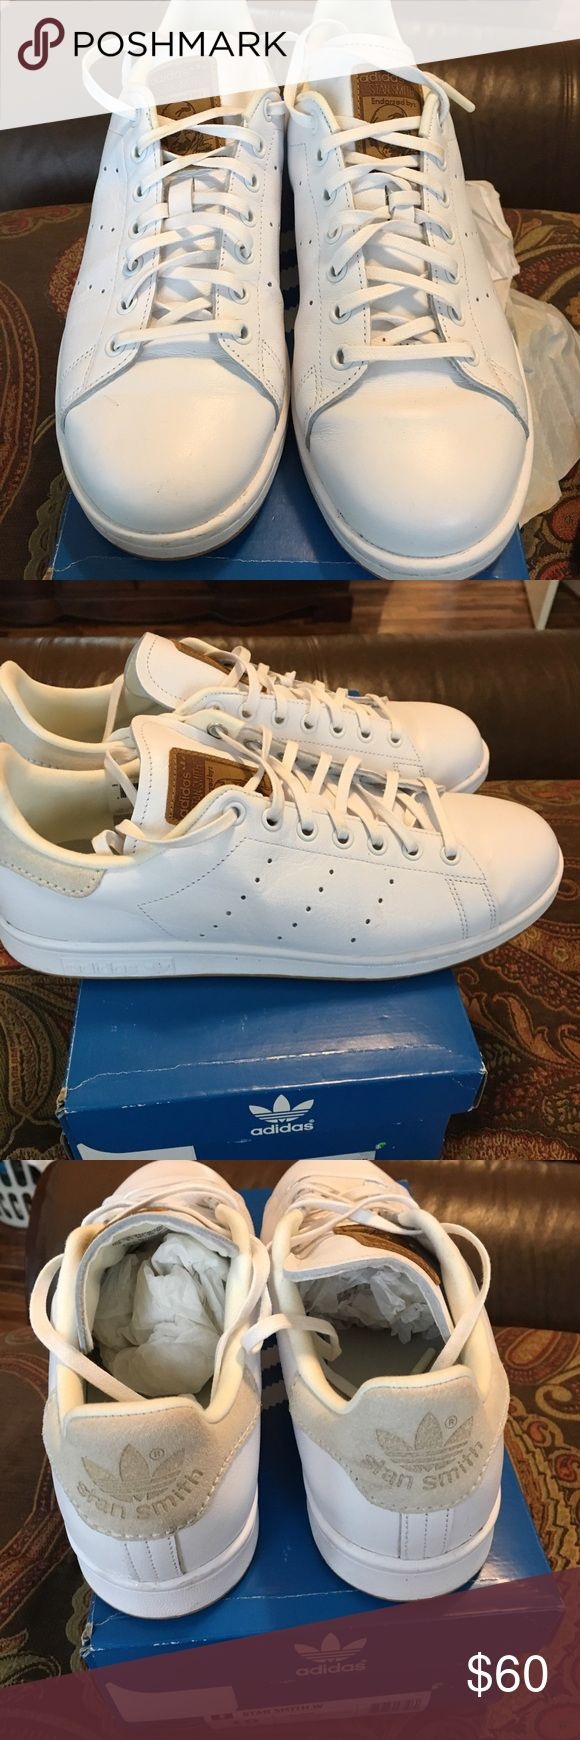 Like New Adidas  Originals Stan Smith Sneakers Like New Adidas Originals Stan Smith Sneakers.  Worn once. Signature Stan Smith Logo on the tongue and heel. Shoe runs a bit big. This size 10 would fit a 10.5 perfectly. adidas Shoes Sneakers